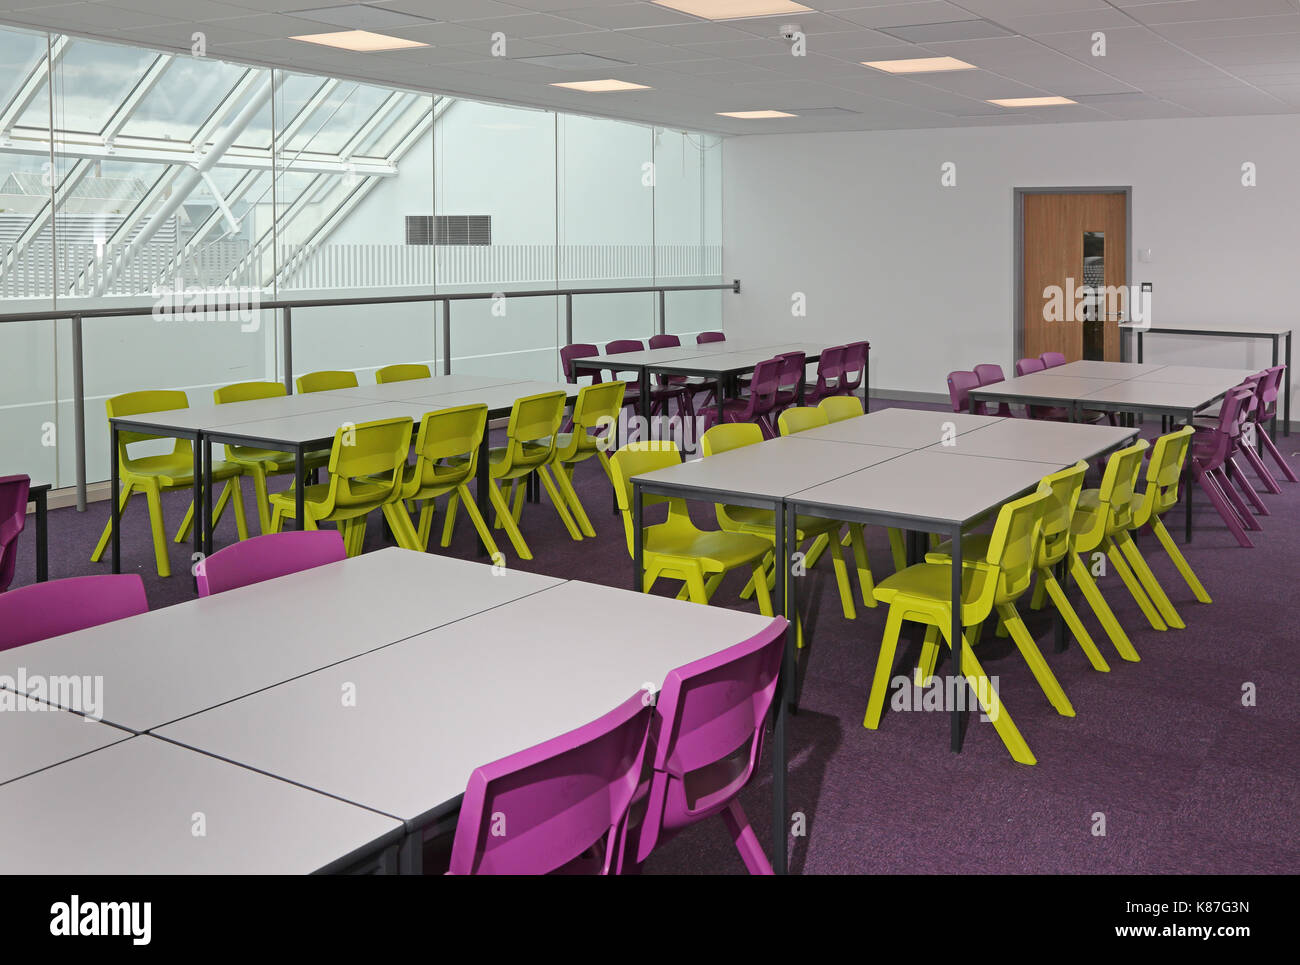 A modern classroom in a new London secondary school converted from a modern office building. Shows teaching space overlooking a large atrium. - Stock Image